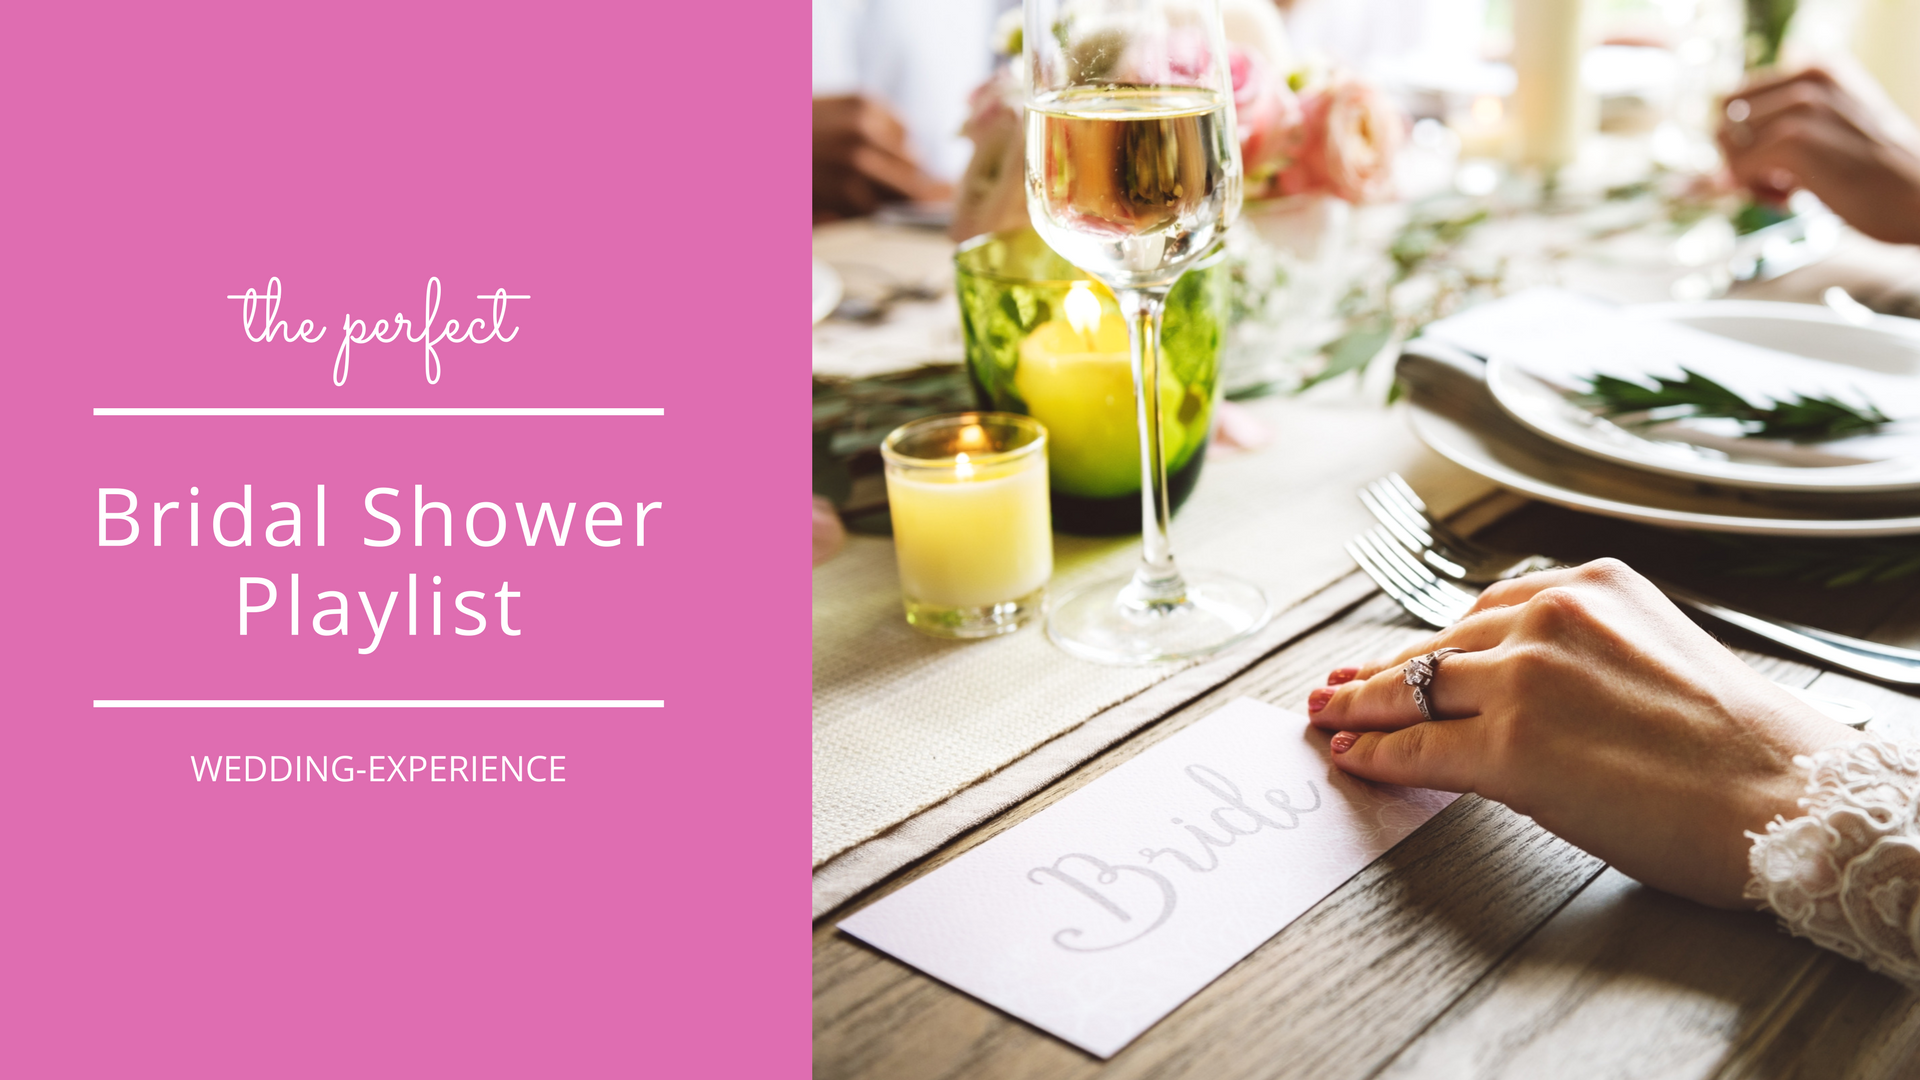 Wedding Experience Gifts: A Bridal Shower Playlist Guests Will Love